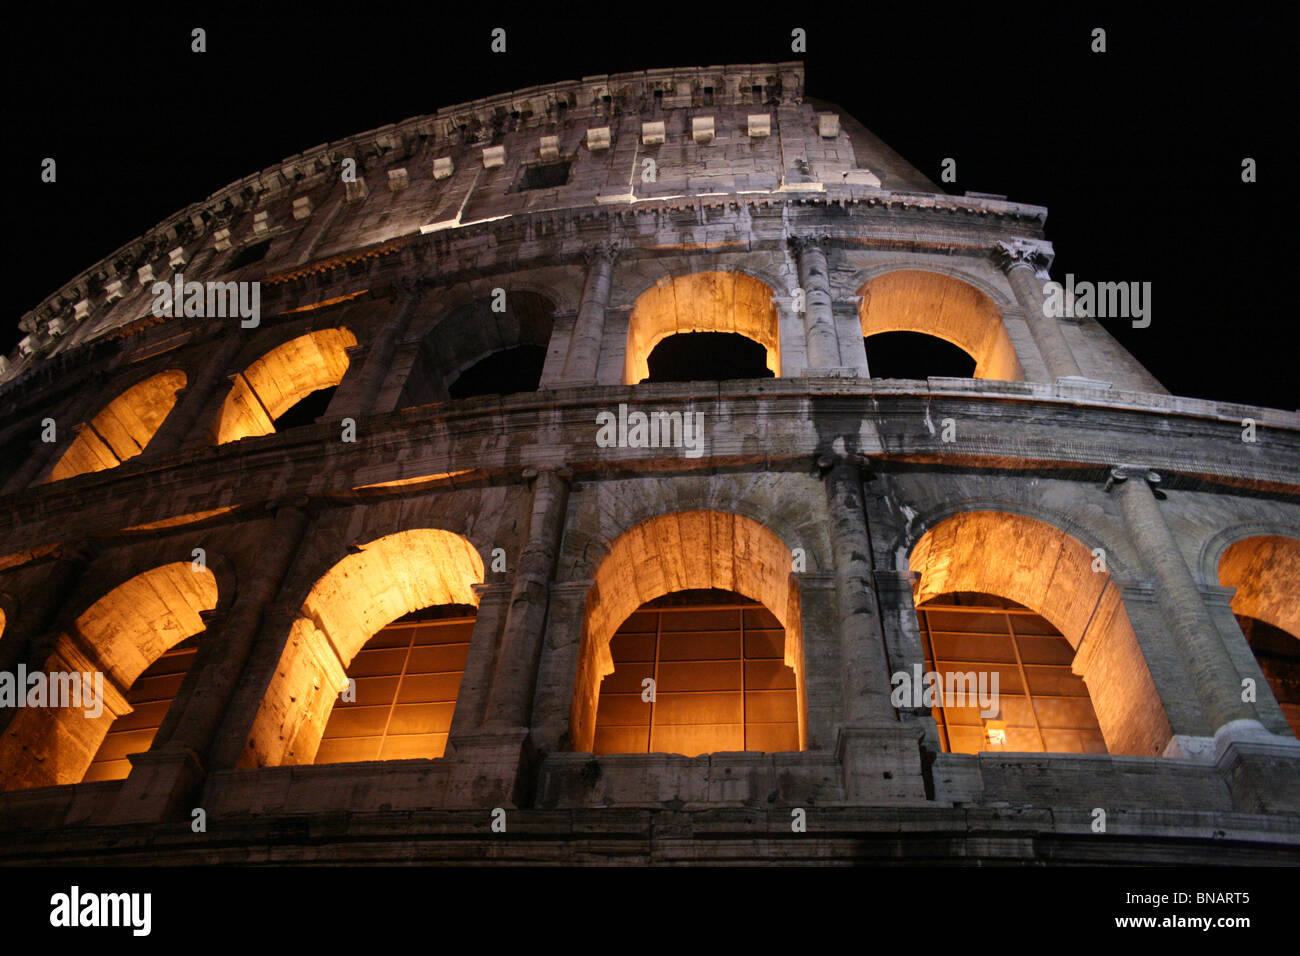 Colloseum Stockbild